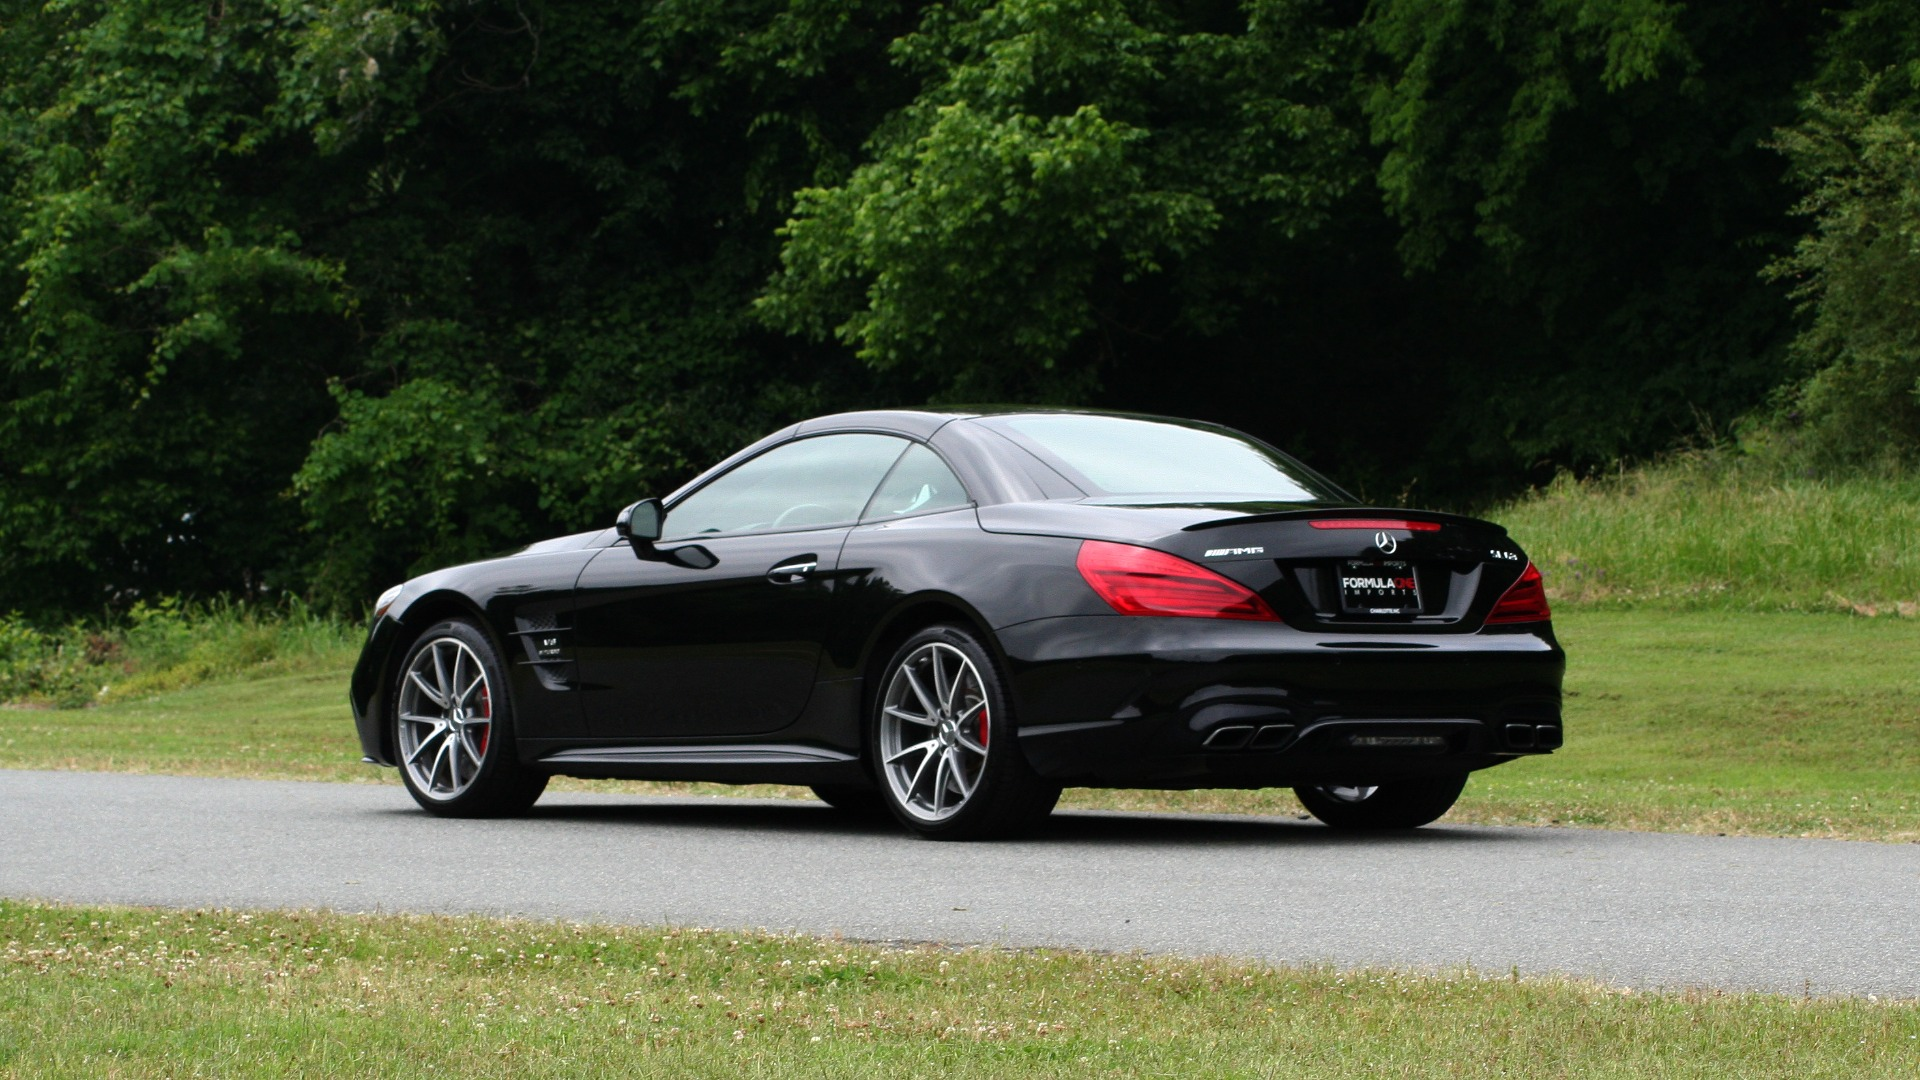 Used 2017 Mercedes-Benz SL 63 AMG / ROADSTER / DRIVER ASSIST / NAV / CAMERA for sale Sold at Formula Imports in Charlotte NC 28227 18